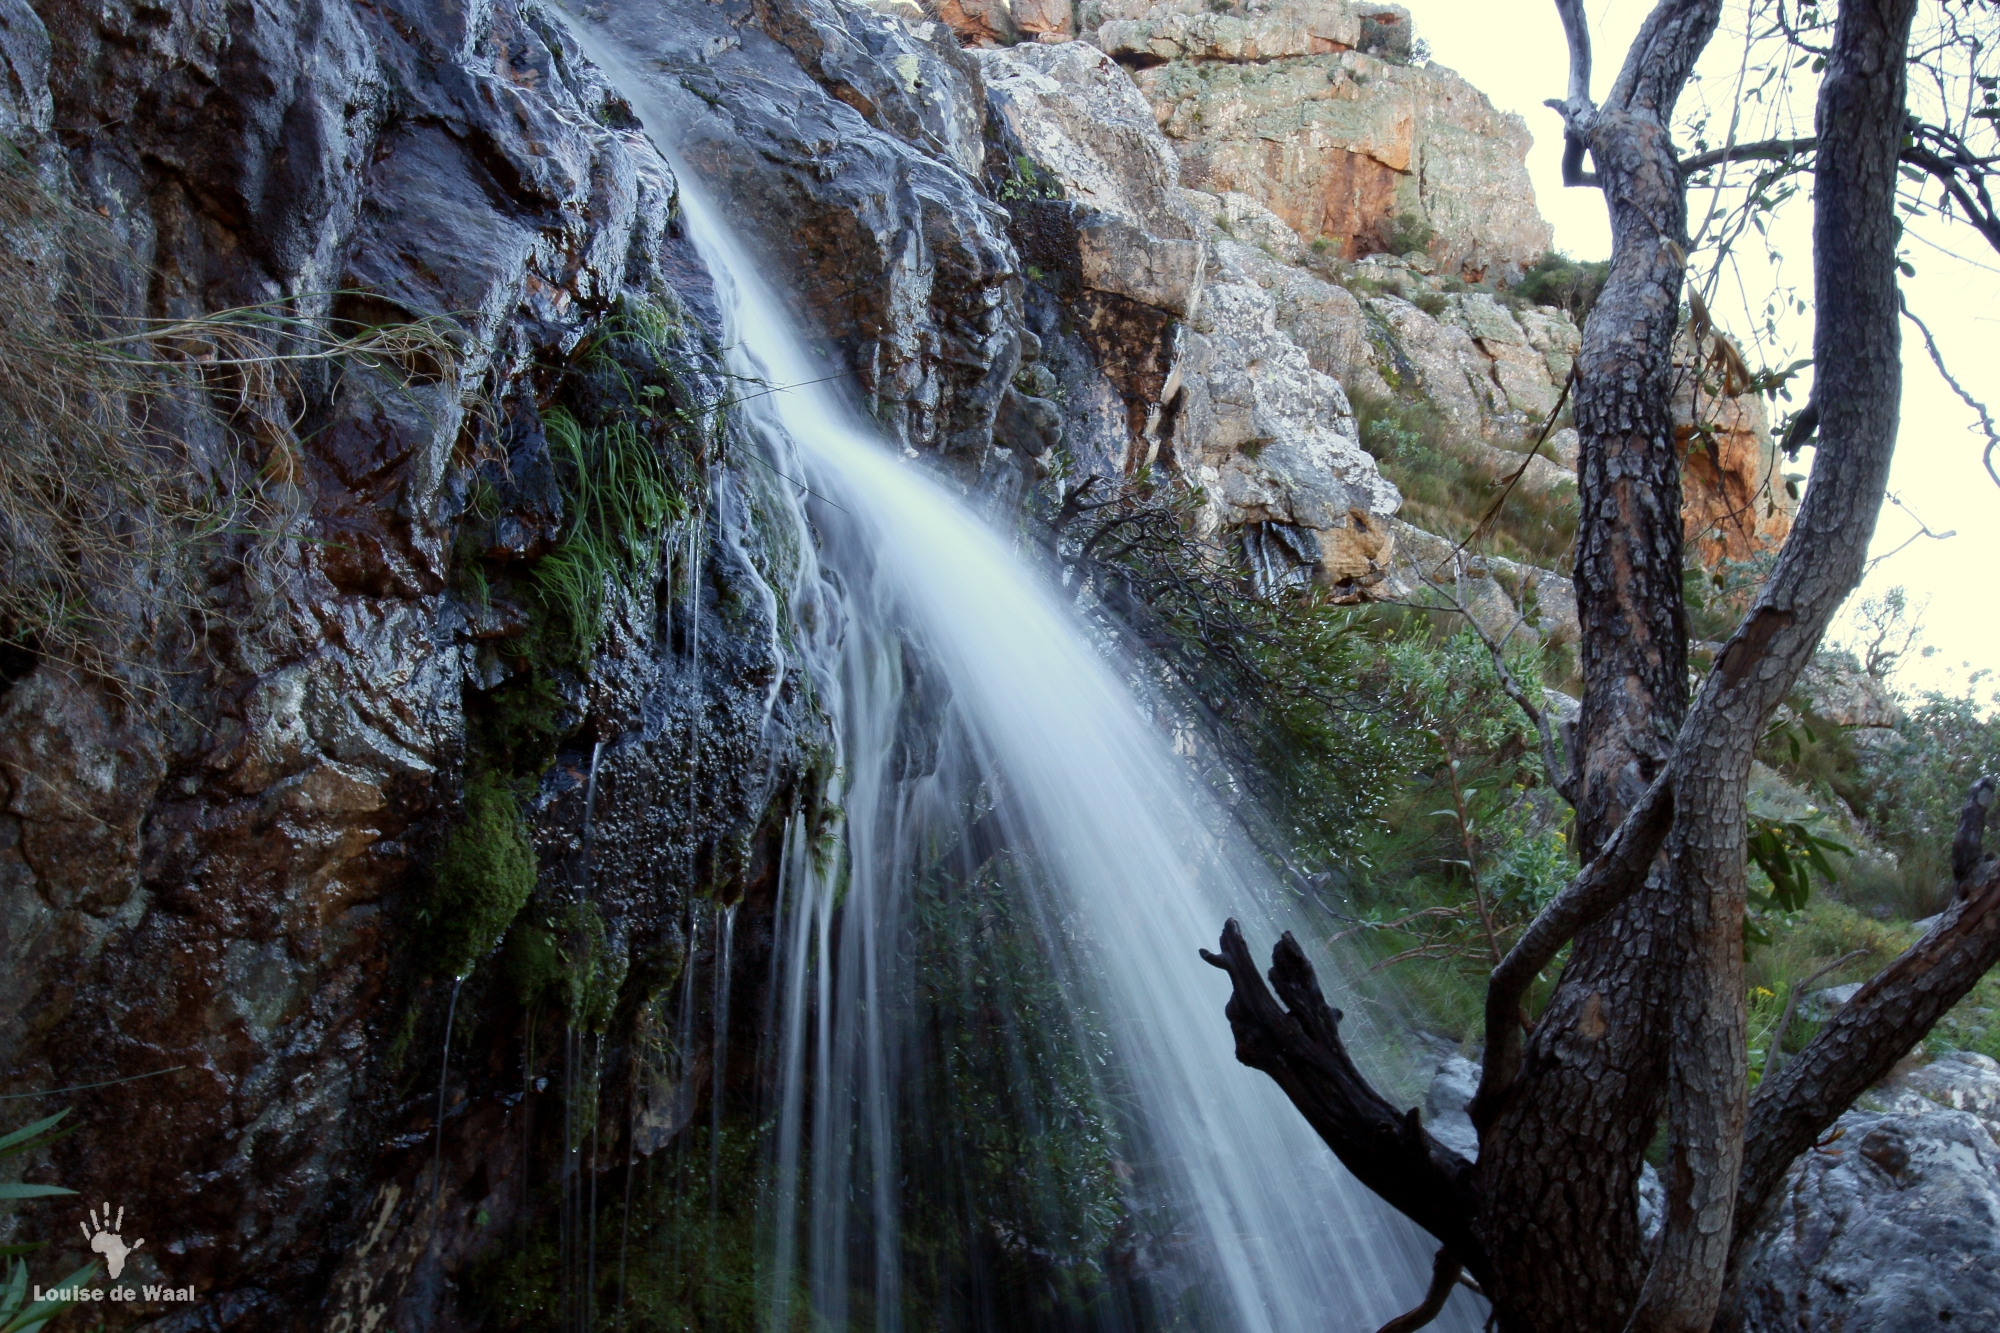 Bastiaanskloof waterfall in full flow after the rains.